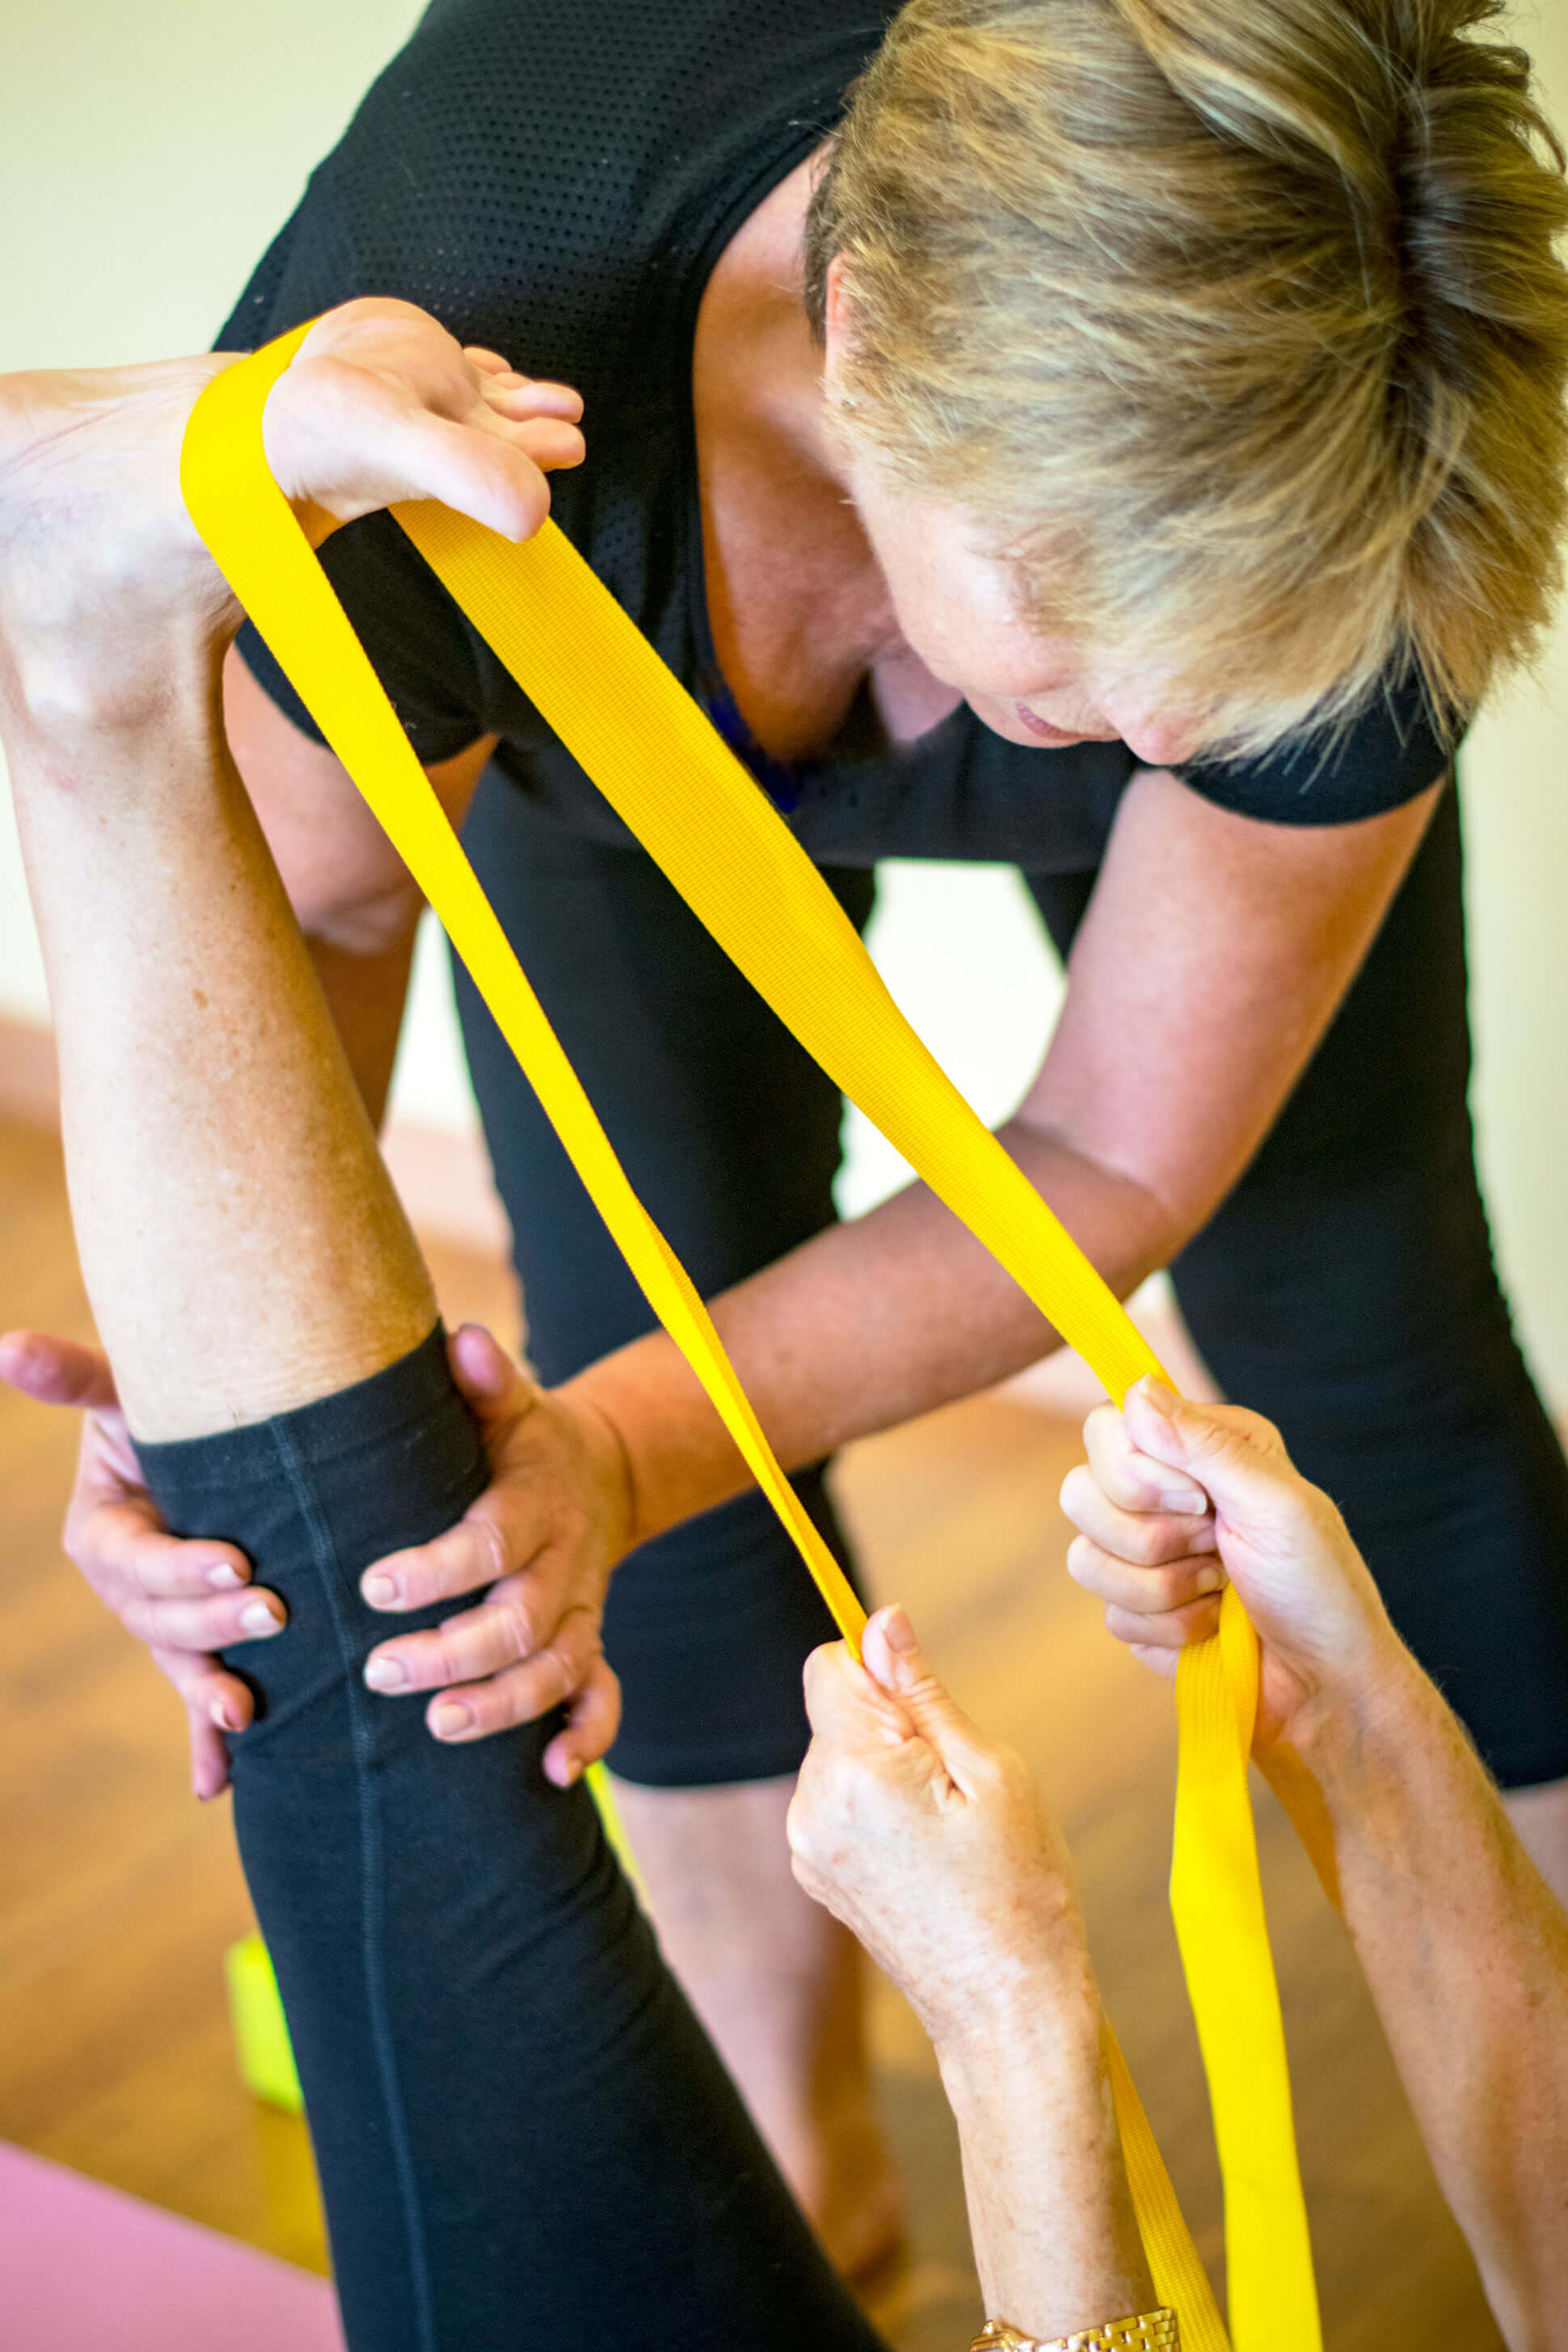 Pilates classes with elastic bands